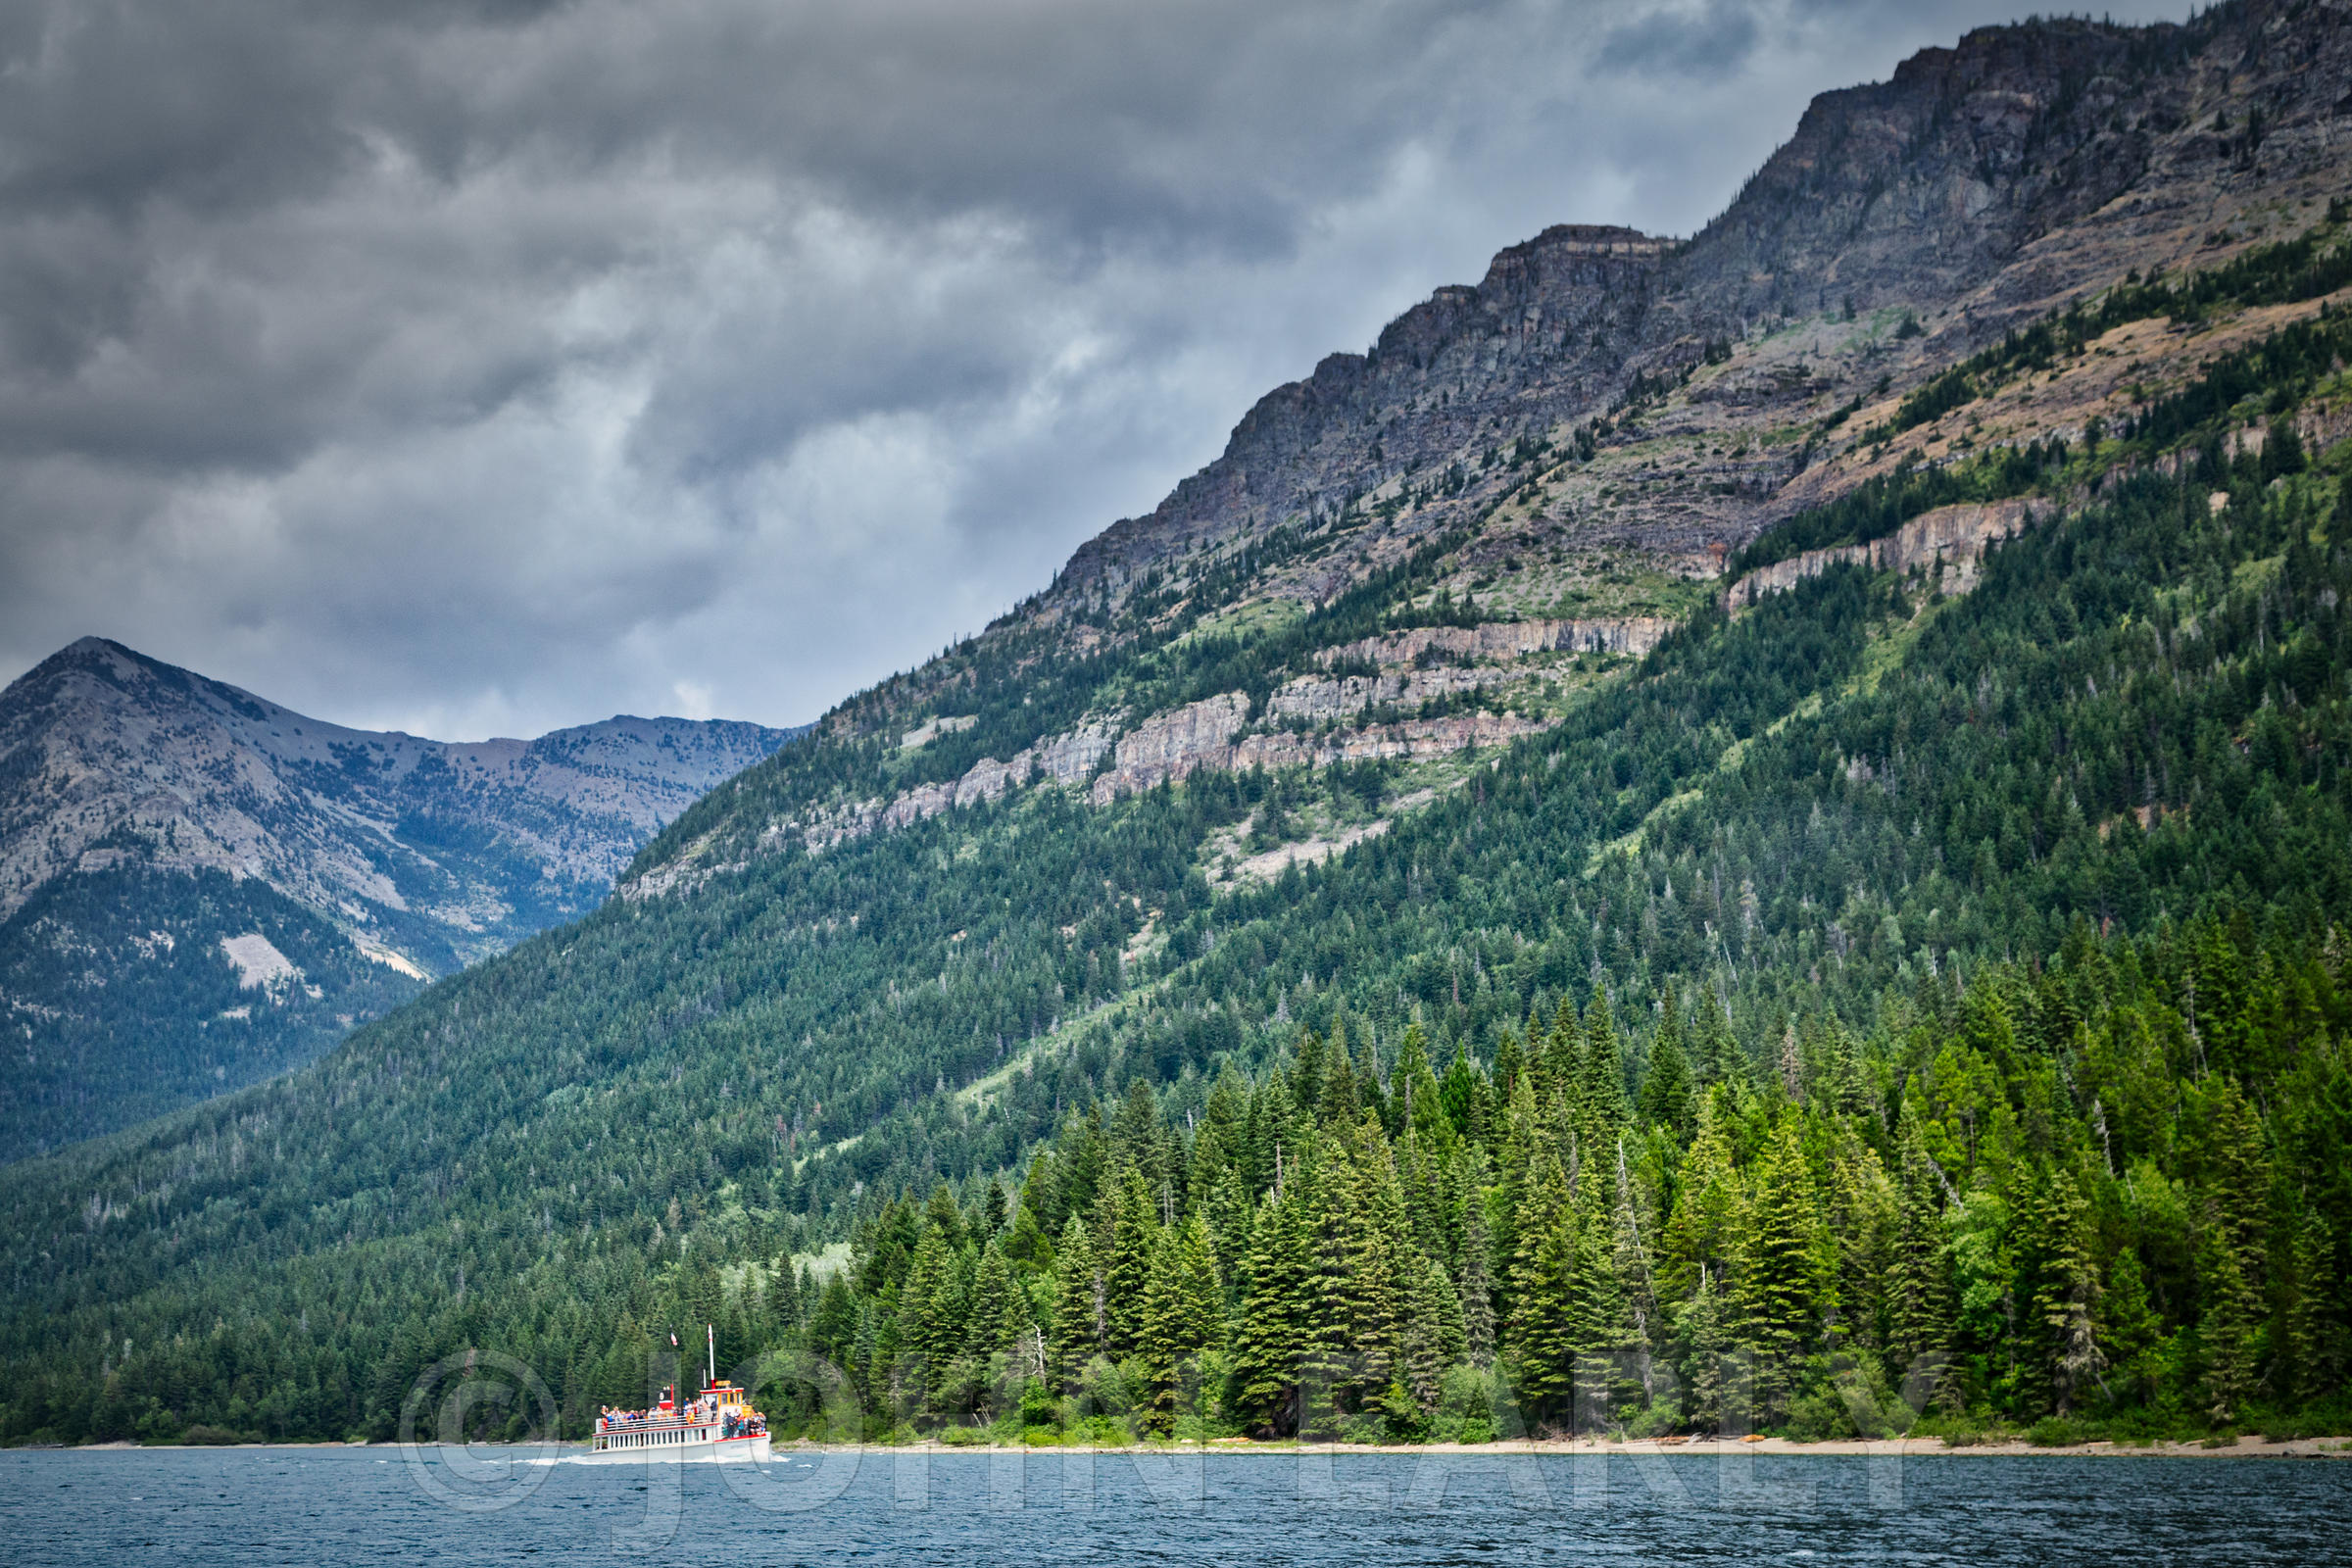 Ferry boat on Waterton Lake.